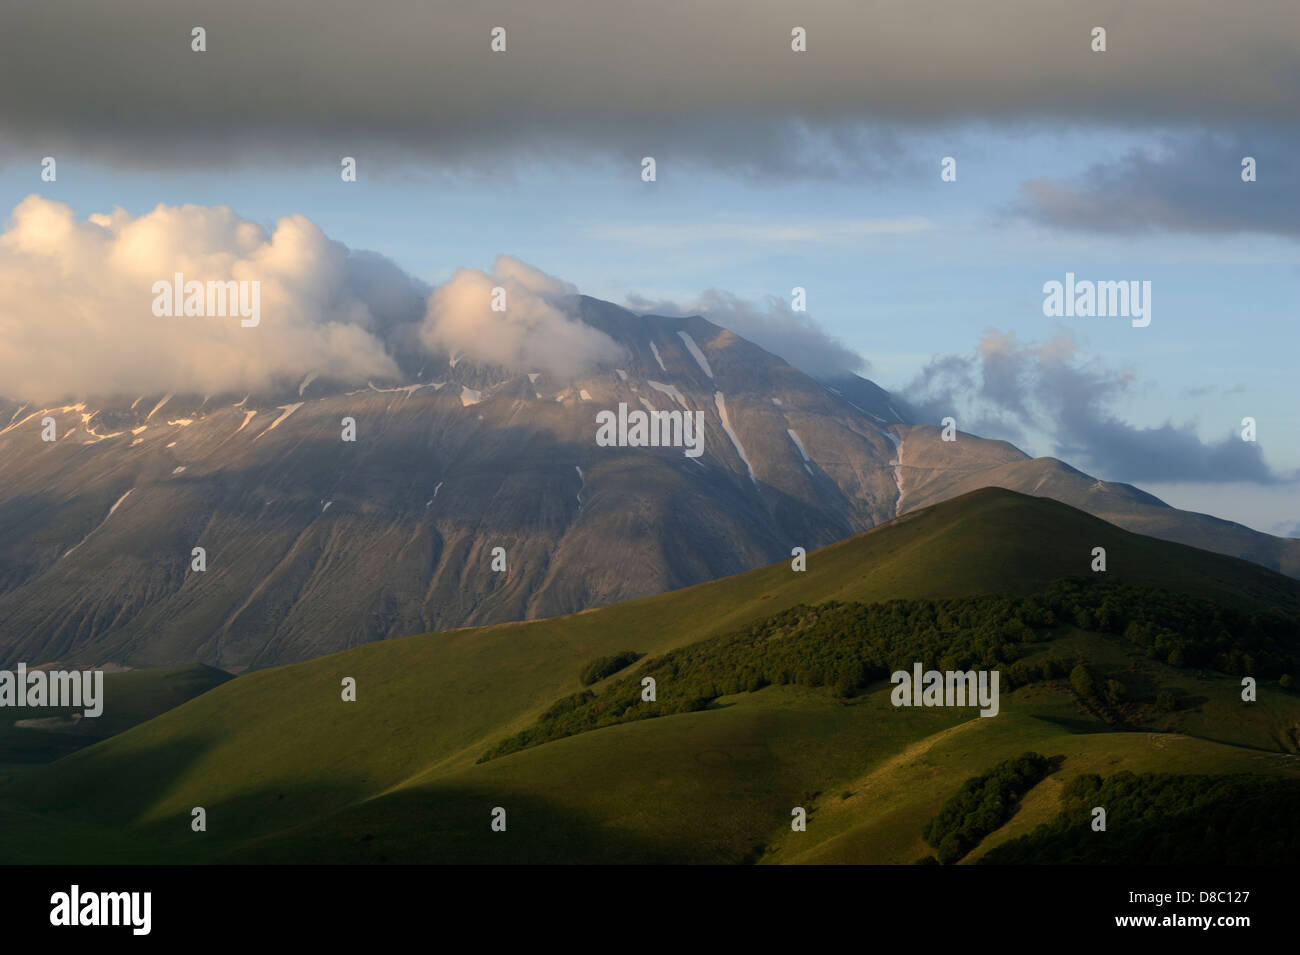 italy, umbria, sibillini national park, monte vettore at sunset - Stock Image